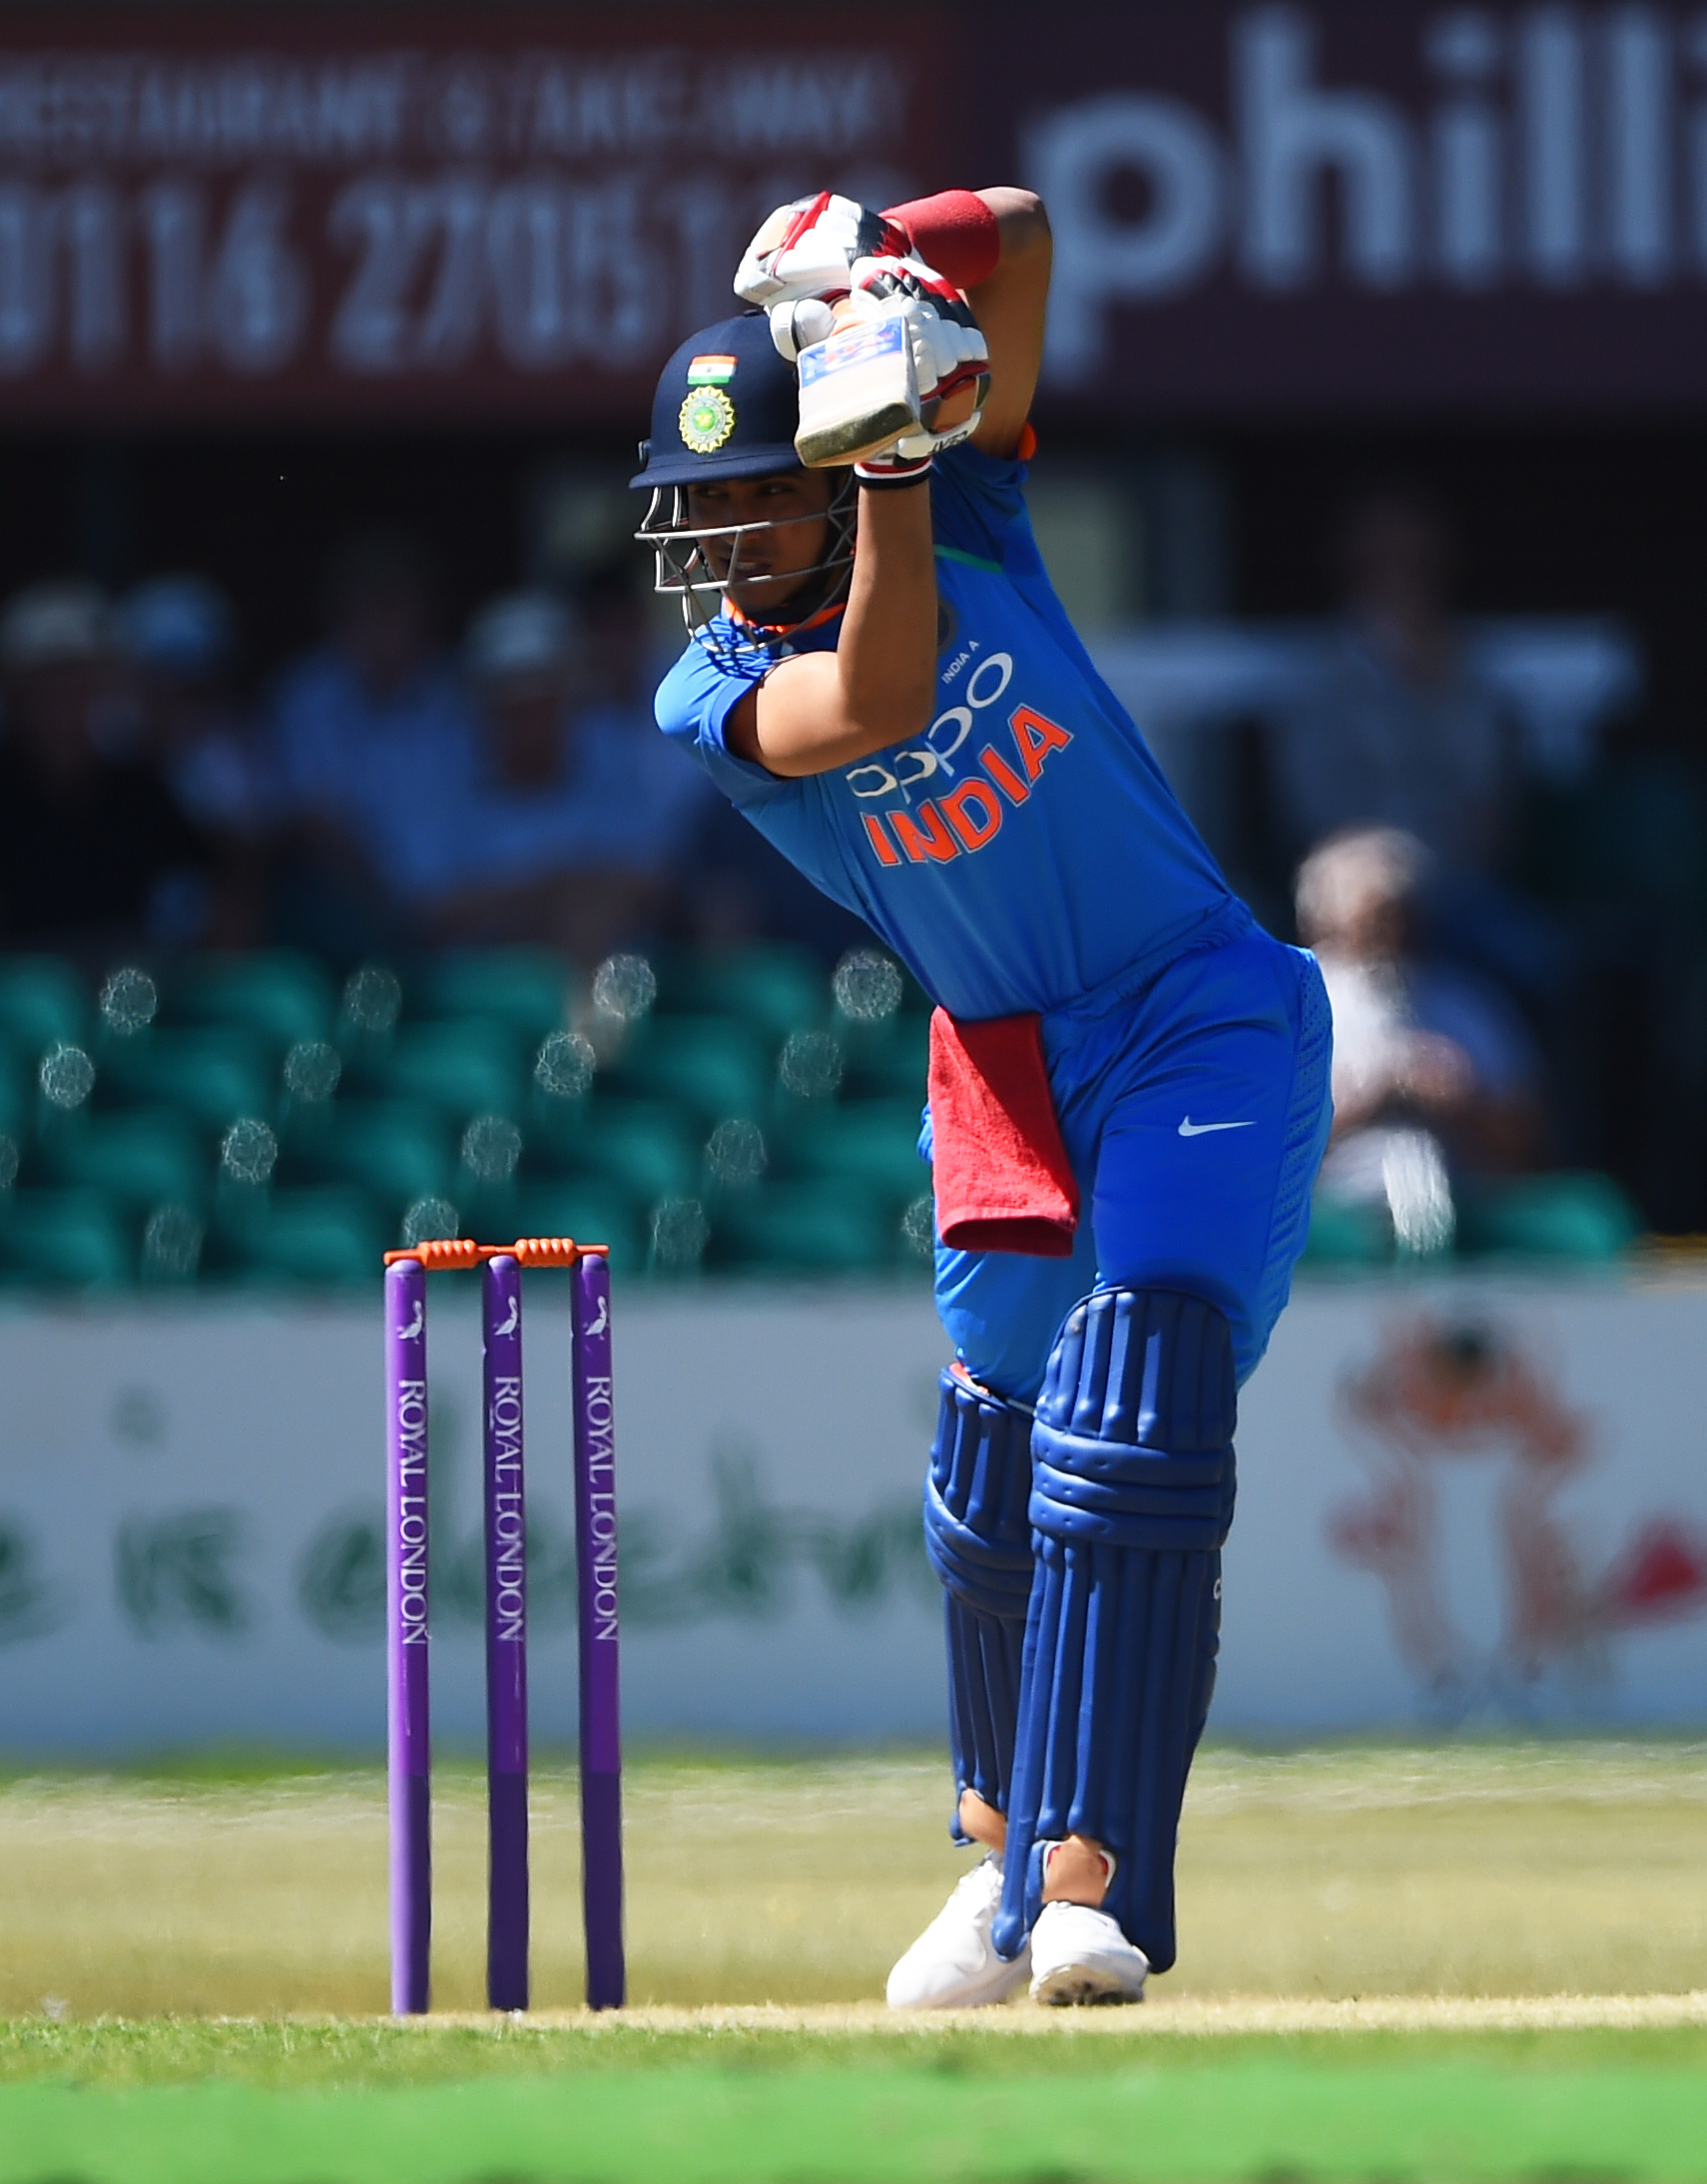 Shubman Gill bats for India 'A' against England Lions at Fischer County Ground last month | Getty